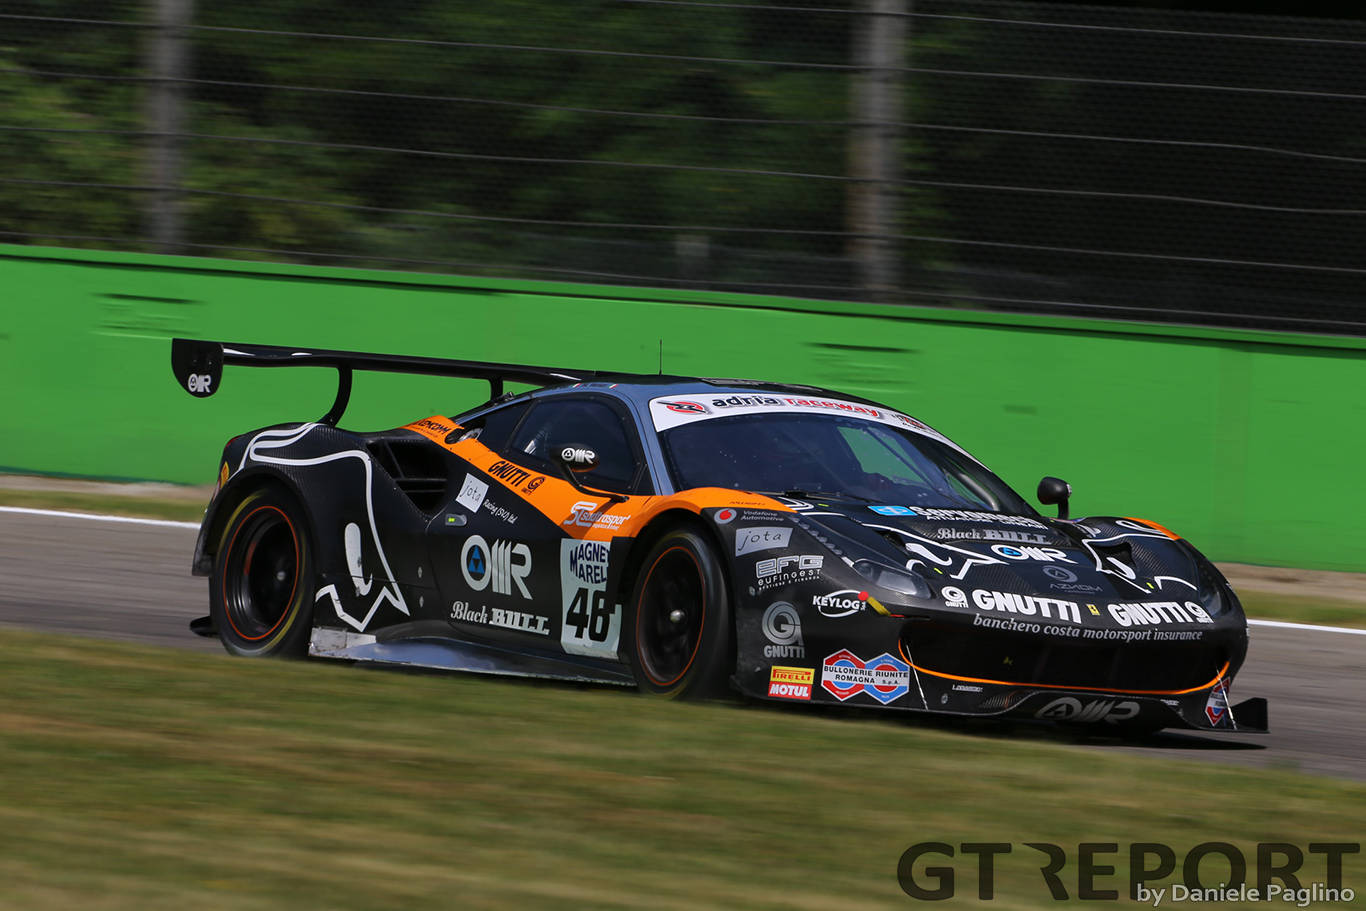 Italian GT Monza race report: On top at the temple of speed